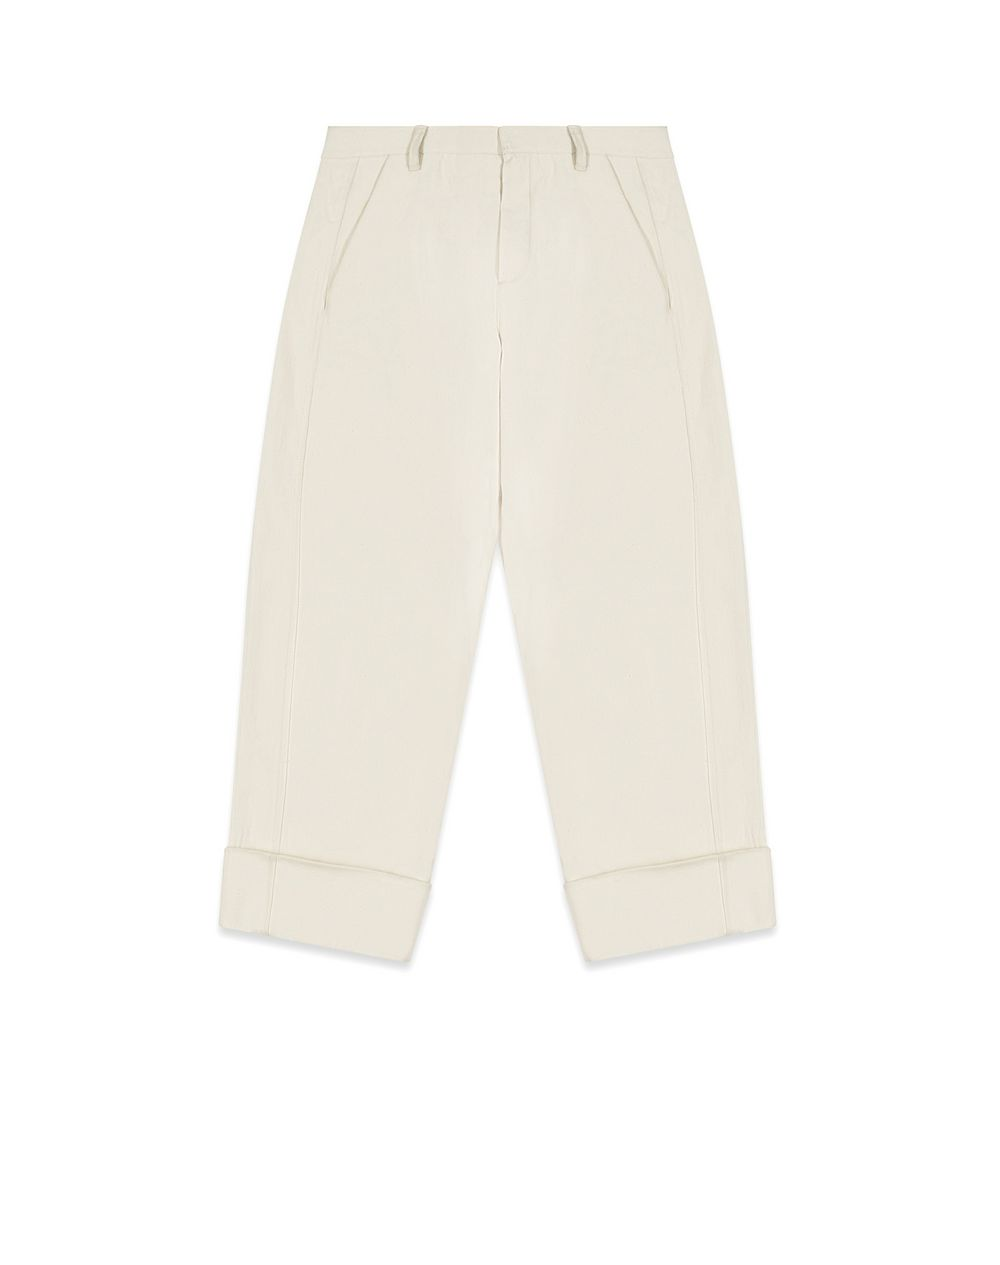 TAILORED COTTON PANTS - Lanvin